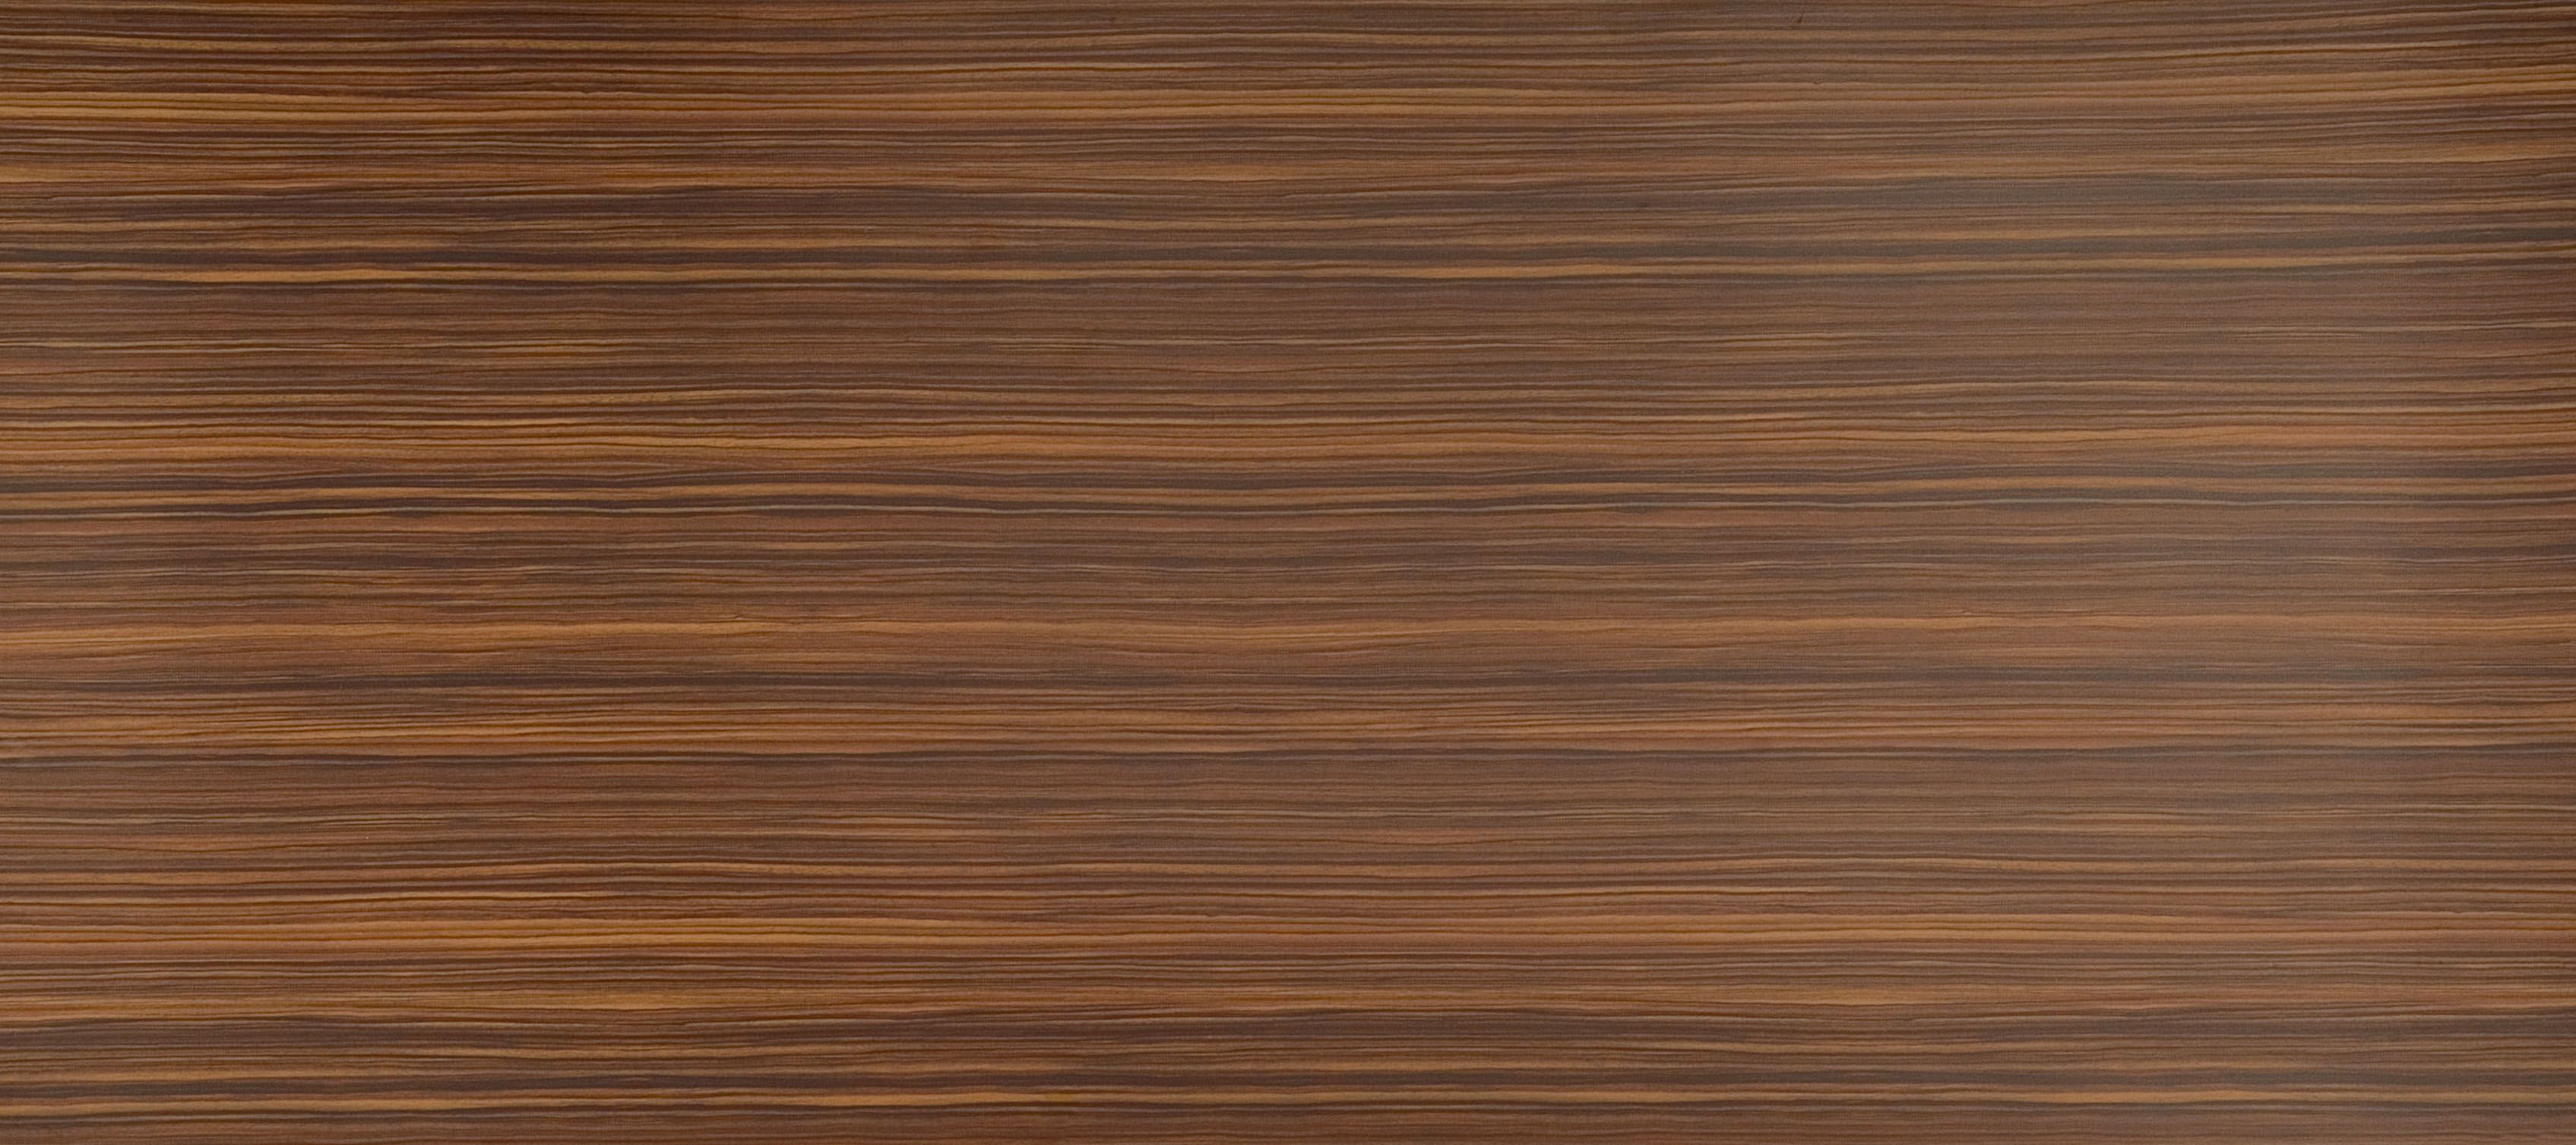 Download texture Texture wood, free download, photo